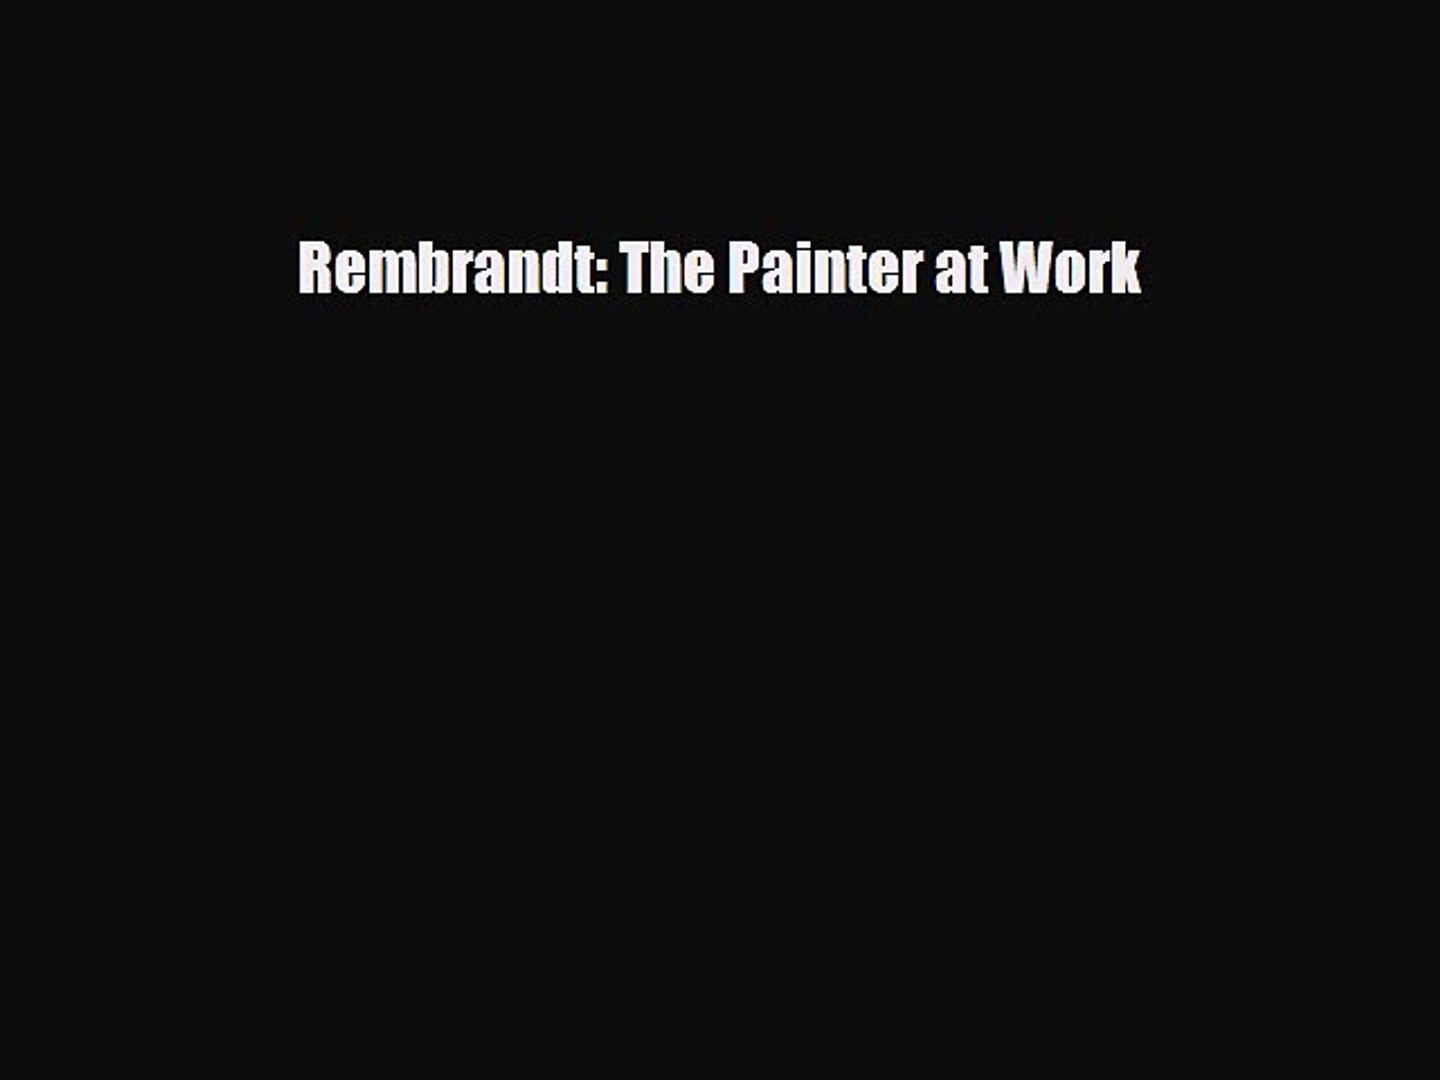 The Painter at Work Rembrandt